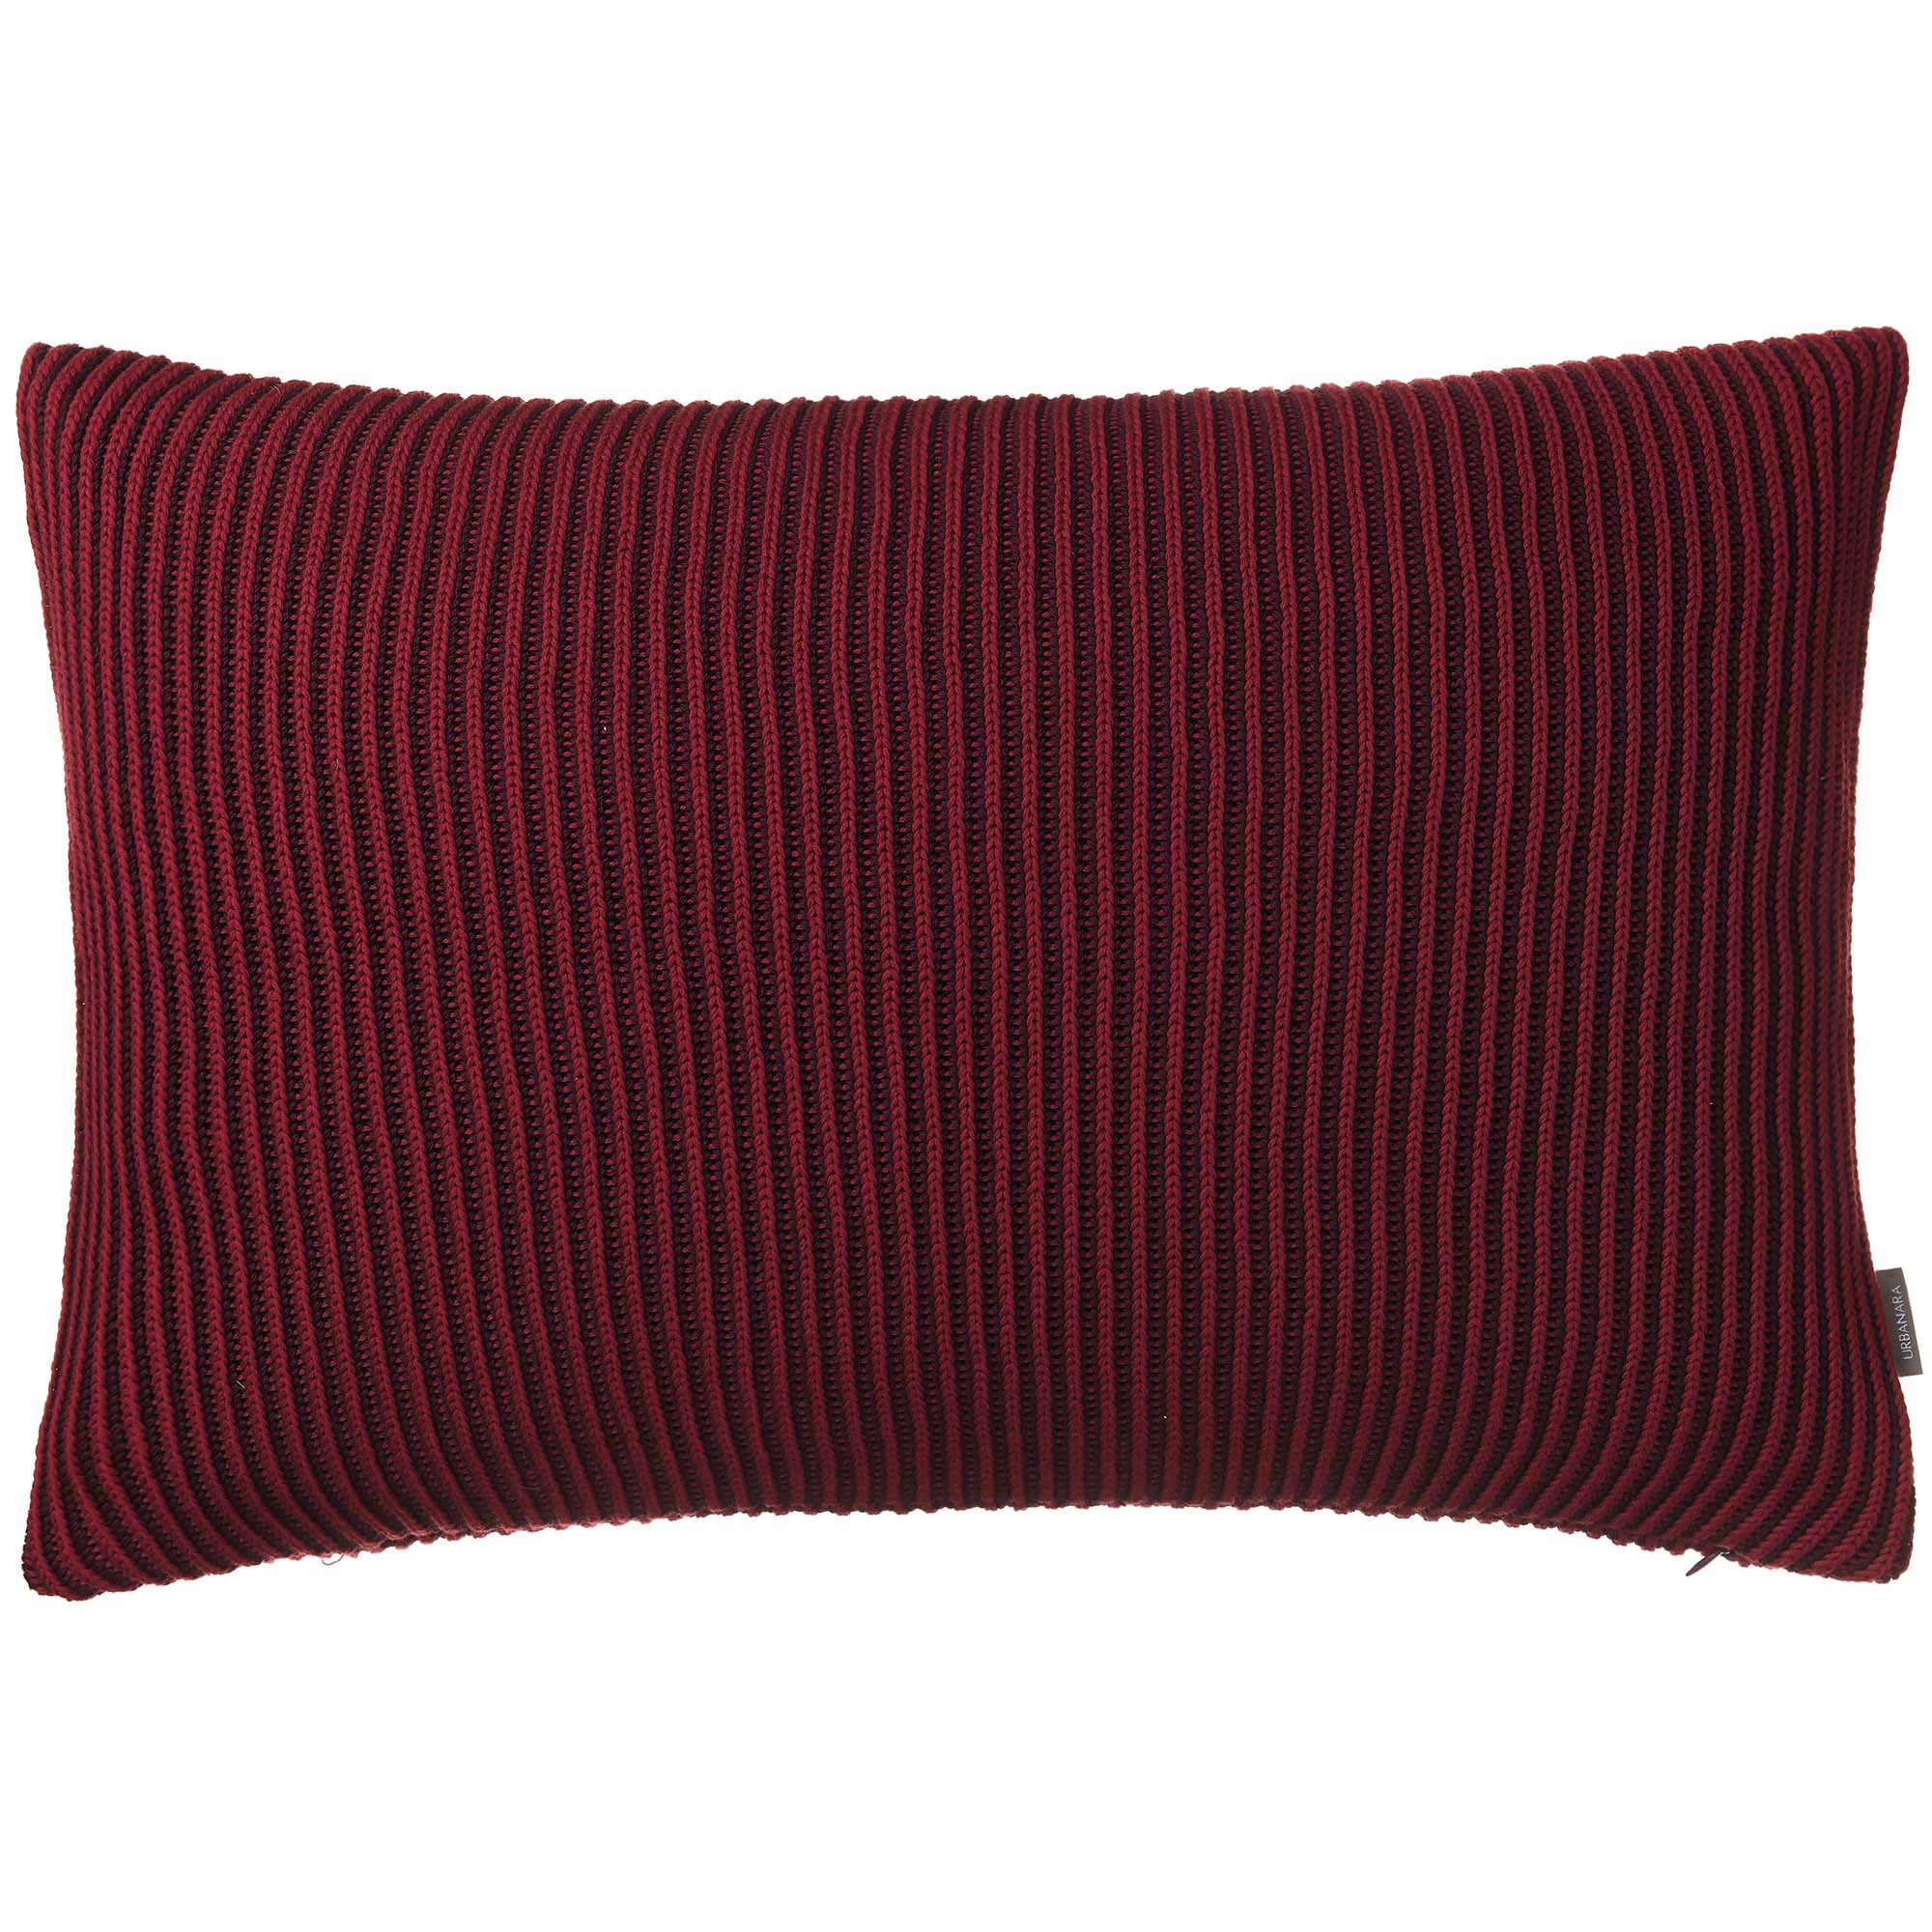 Azoia cushion cover, bordeaux red & dark red, 100% organic cotton